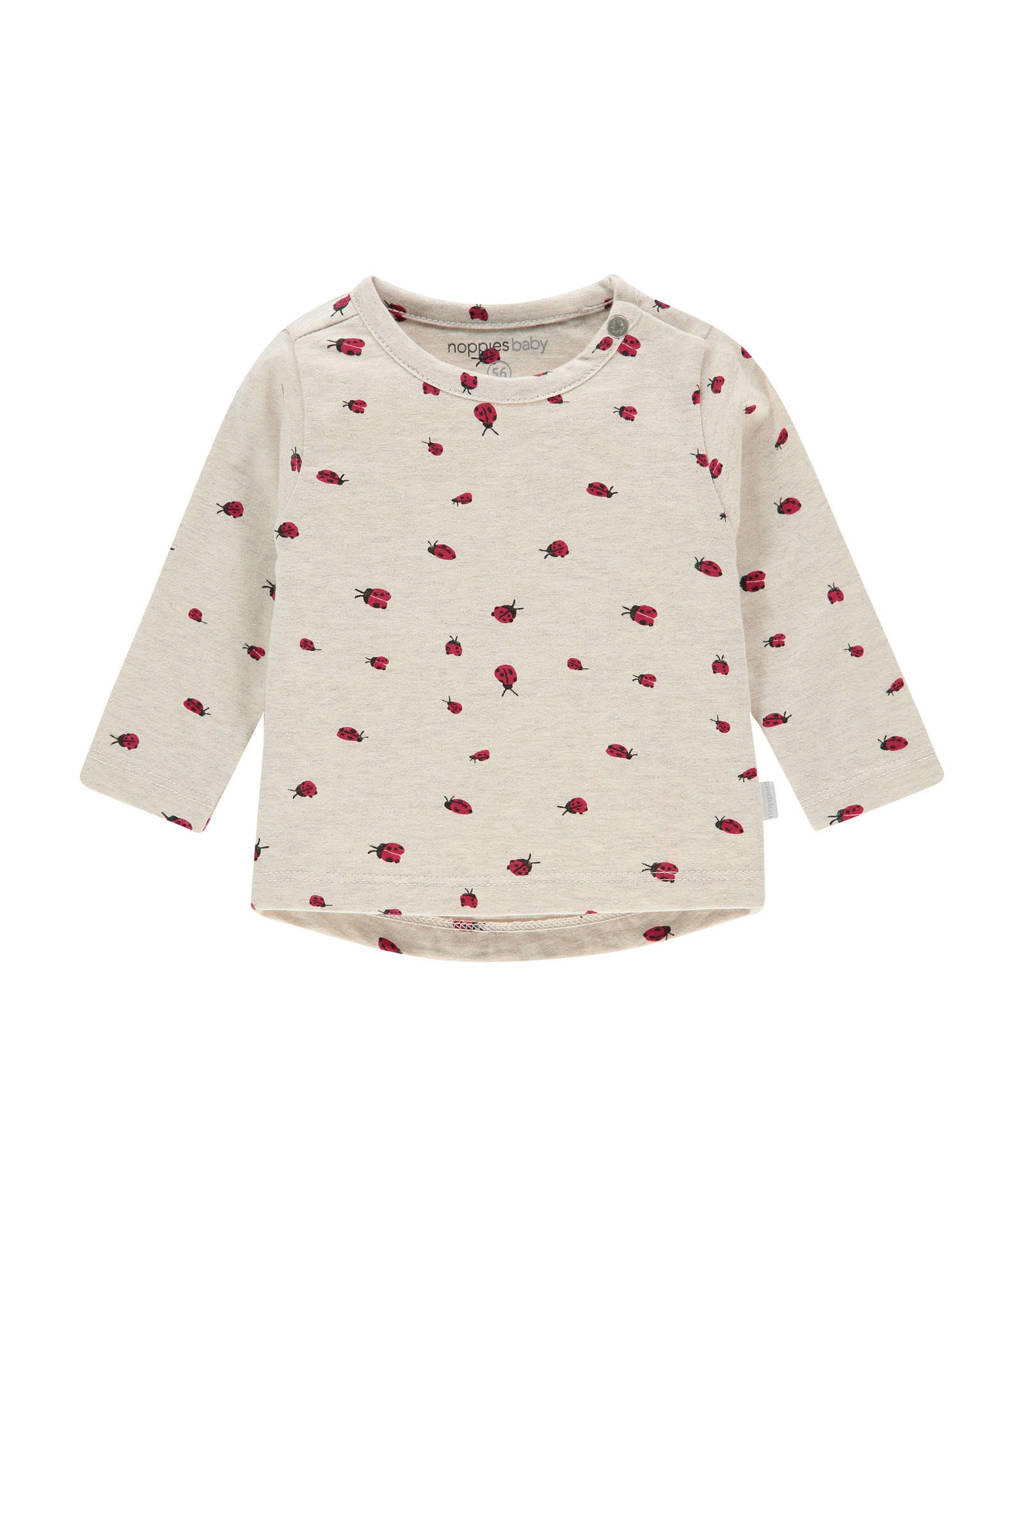 Noppies baby longsleeve Cary met dierenprint off white, Off White